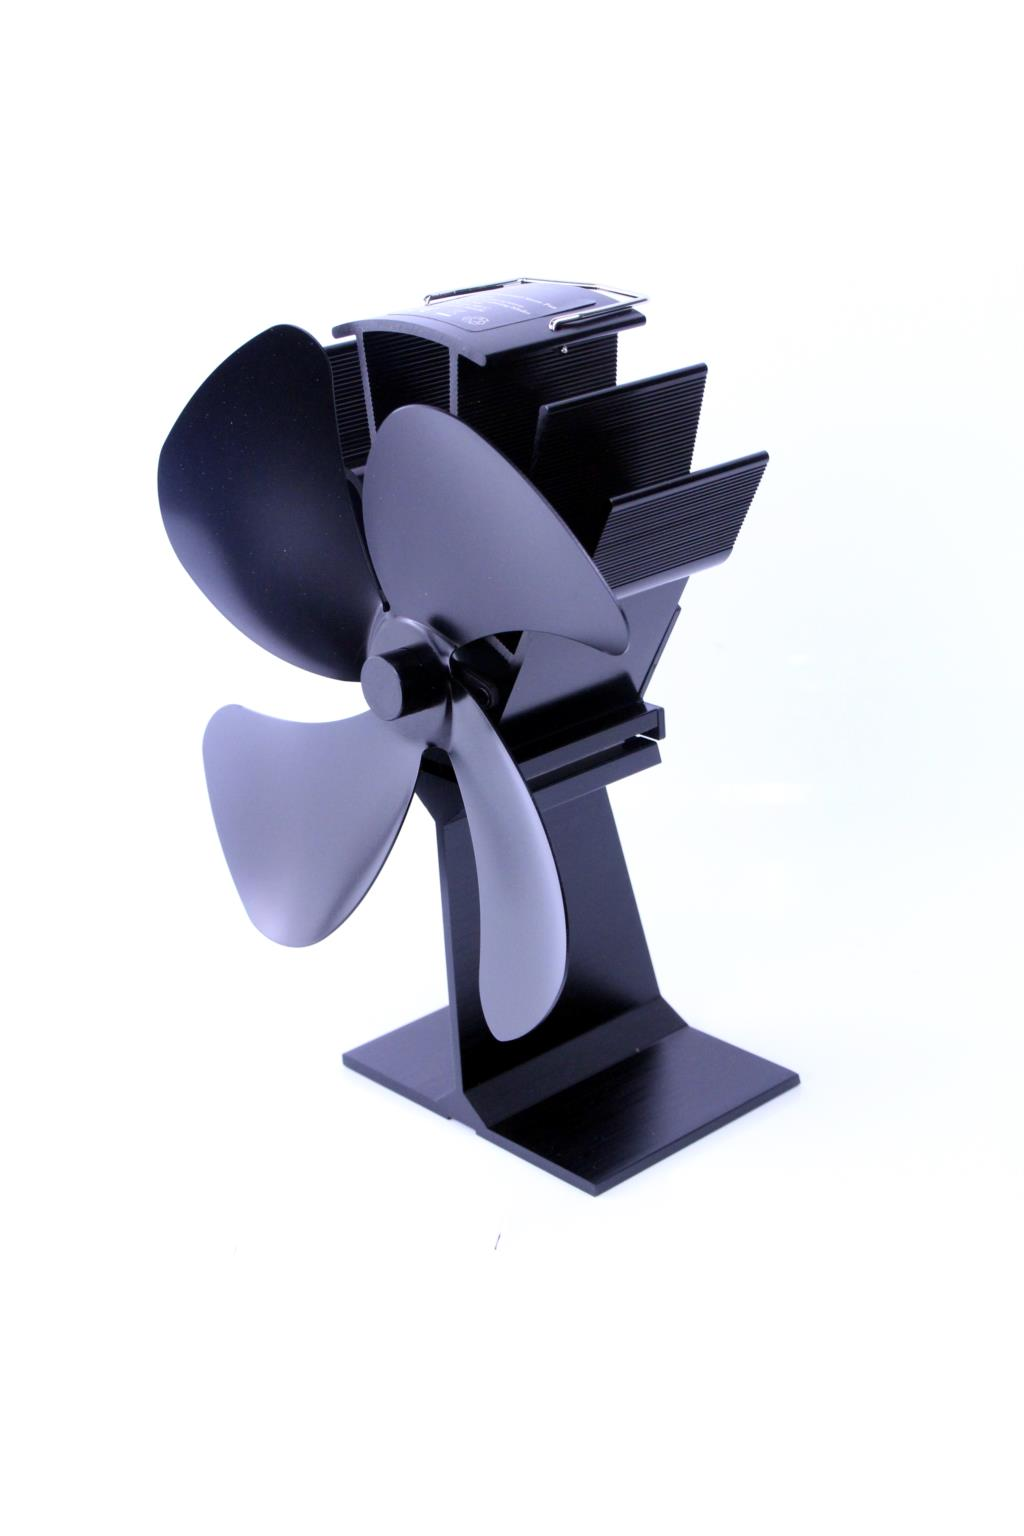 Heat Powered Stove Fan 4 Blades With Thermometer Home Silent Fireplace Fan For Wood/Log Burner/Fireplace Efficient Eco Stove Fan